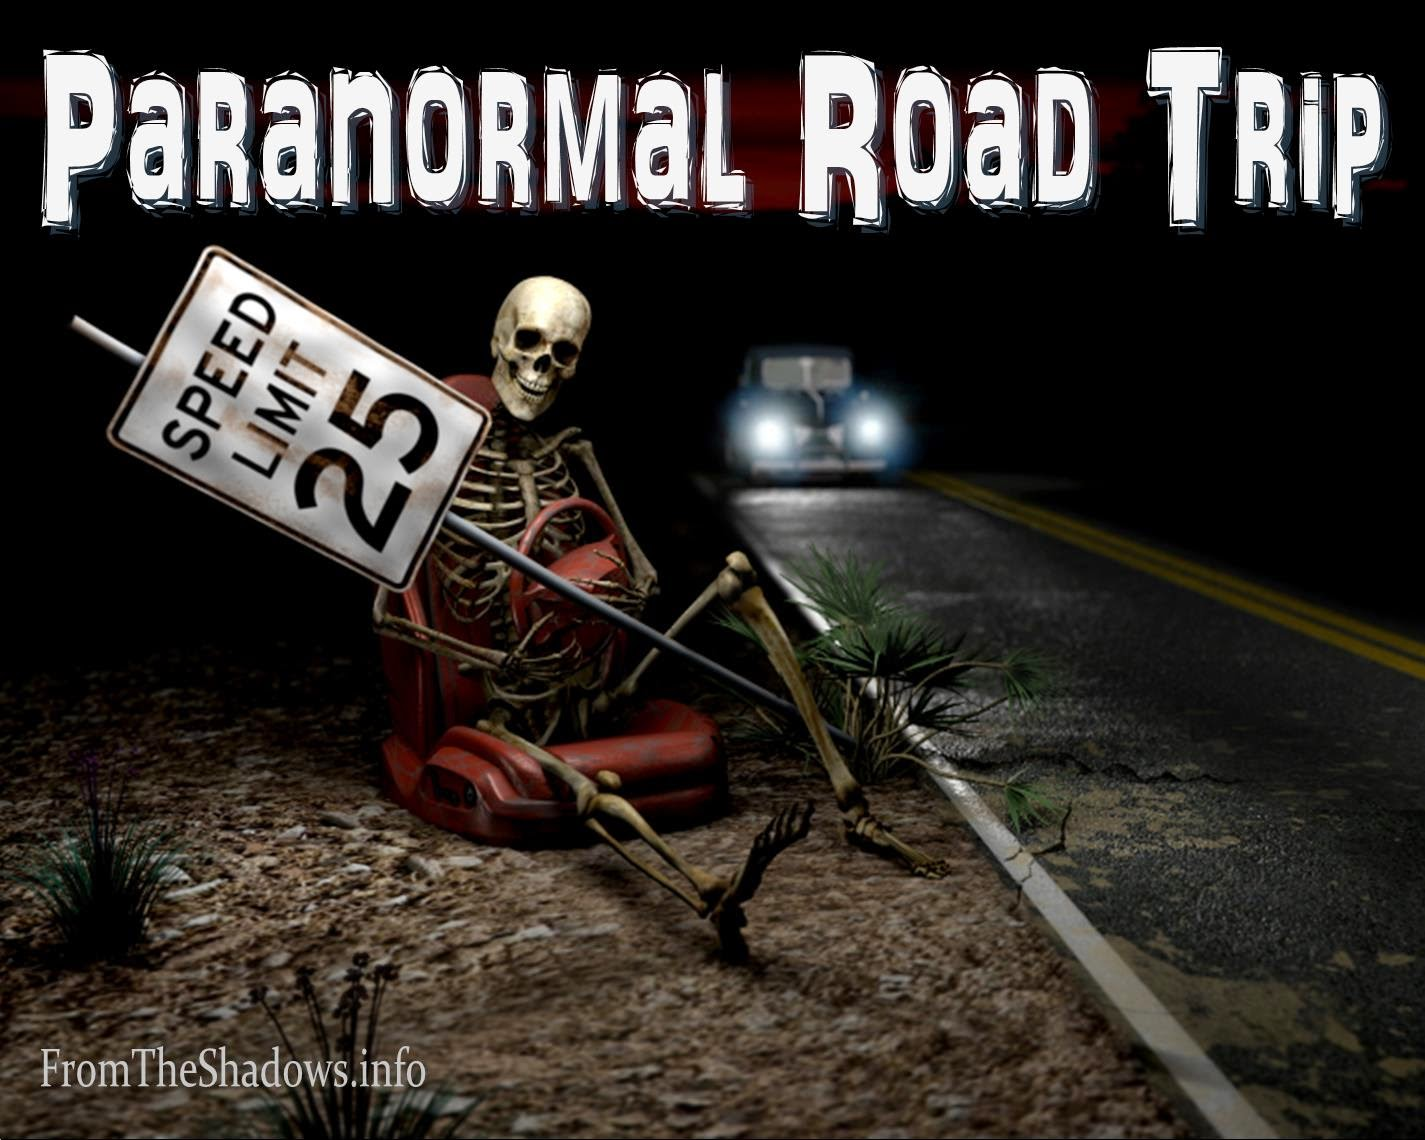 Paranormal Road Trip: Destination South Tom's River, New Jersey with Shawntelle Madison